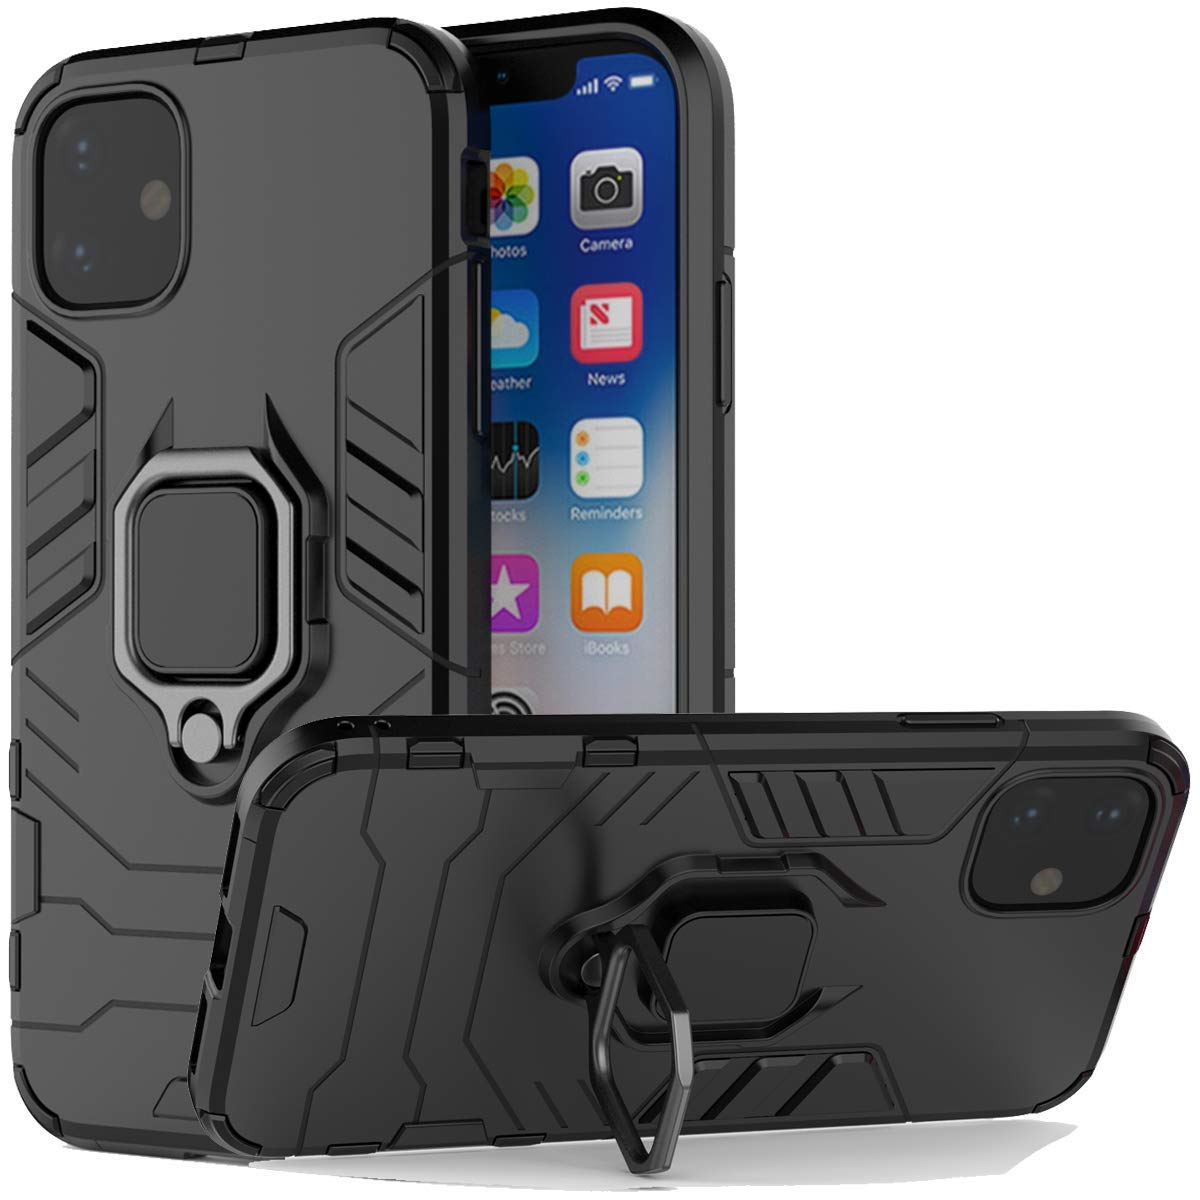 iPhone 11 2019 Case, Futanwei Rugged Metal [Fit Magnetic Car Mount] Rotating Ring Kickstand Phone Case, Double Layer Hybrid Anti-Fall Shockproof Armor Cover for iPhone 11 2019 6.1 Inch, Black by Futanwei